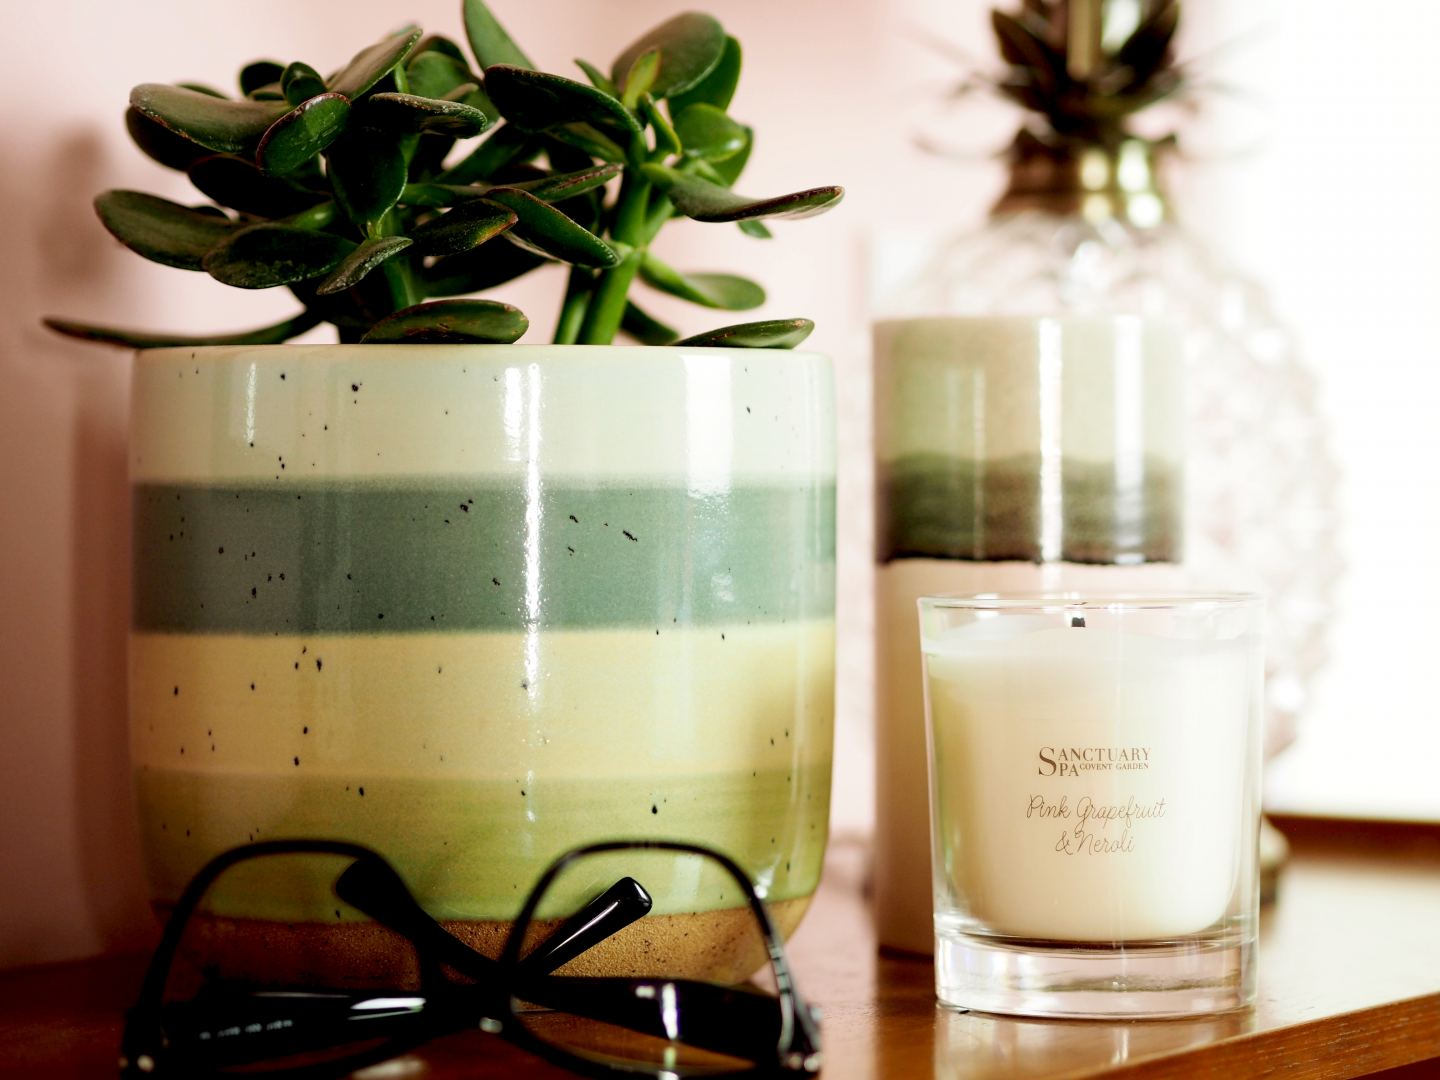 Sanctuary Spa 'Pink Grapefruit & Neroli Votive' candle